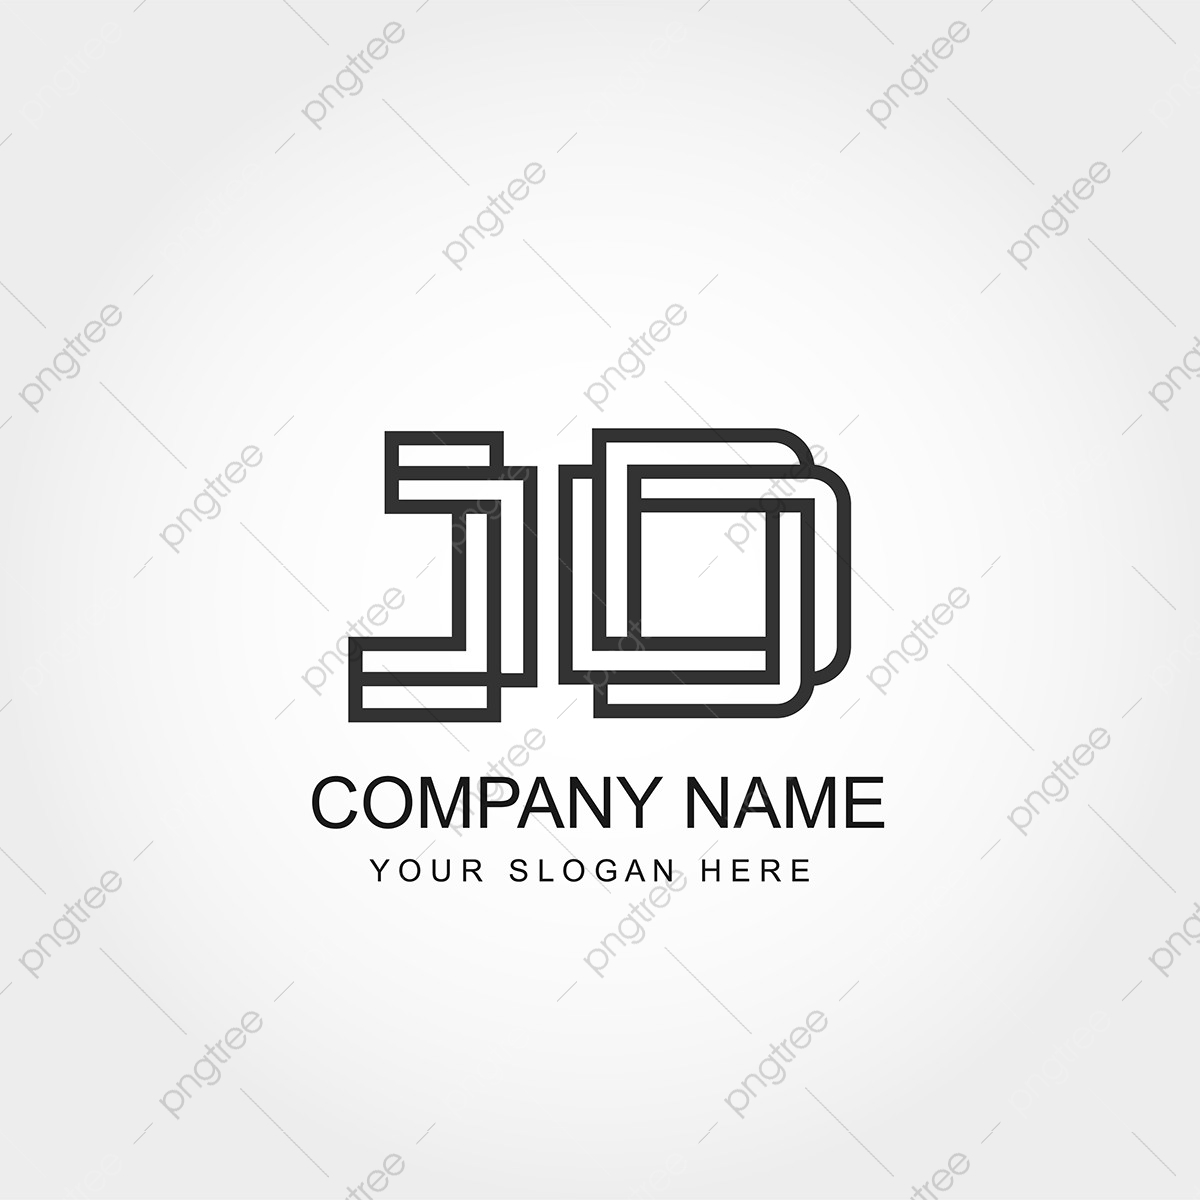 jds logo png vector psd and clipart with transparent background for free download pngtree https pngtree com freepng initial letter jd logo template 3580683 html